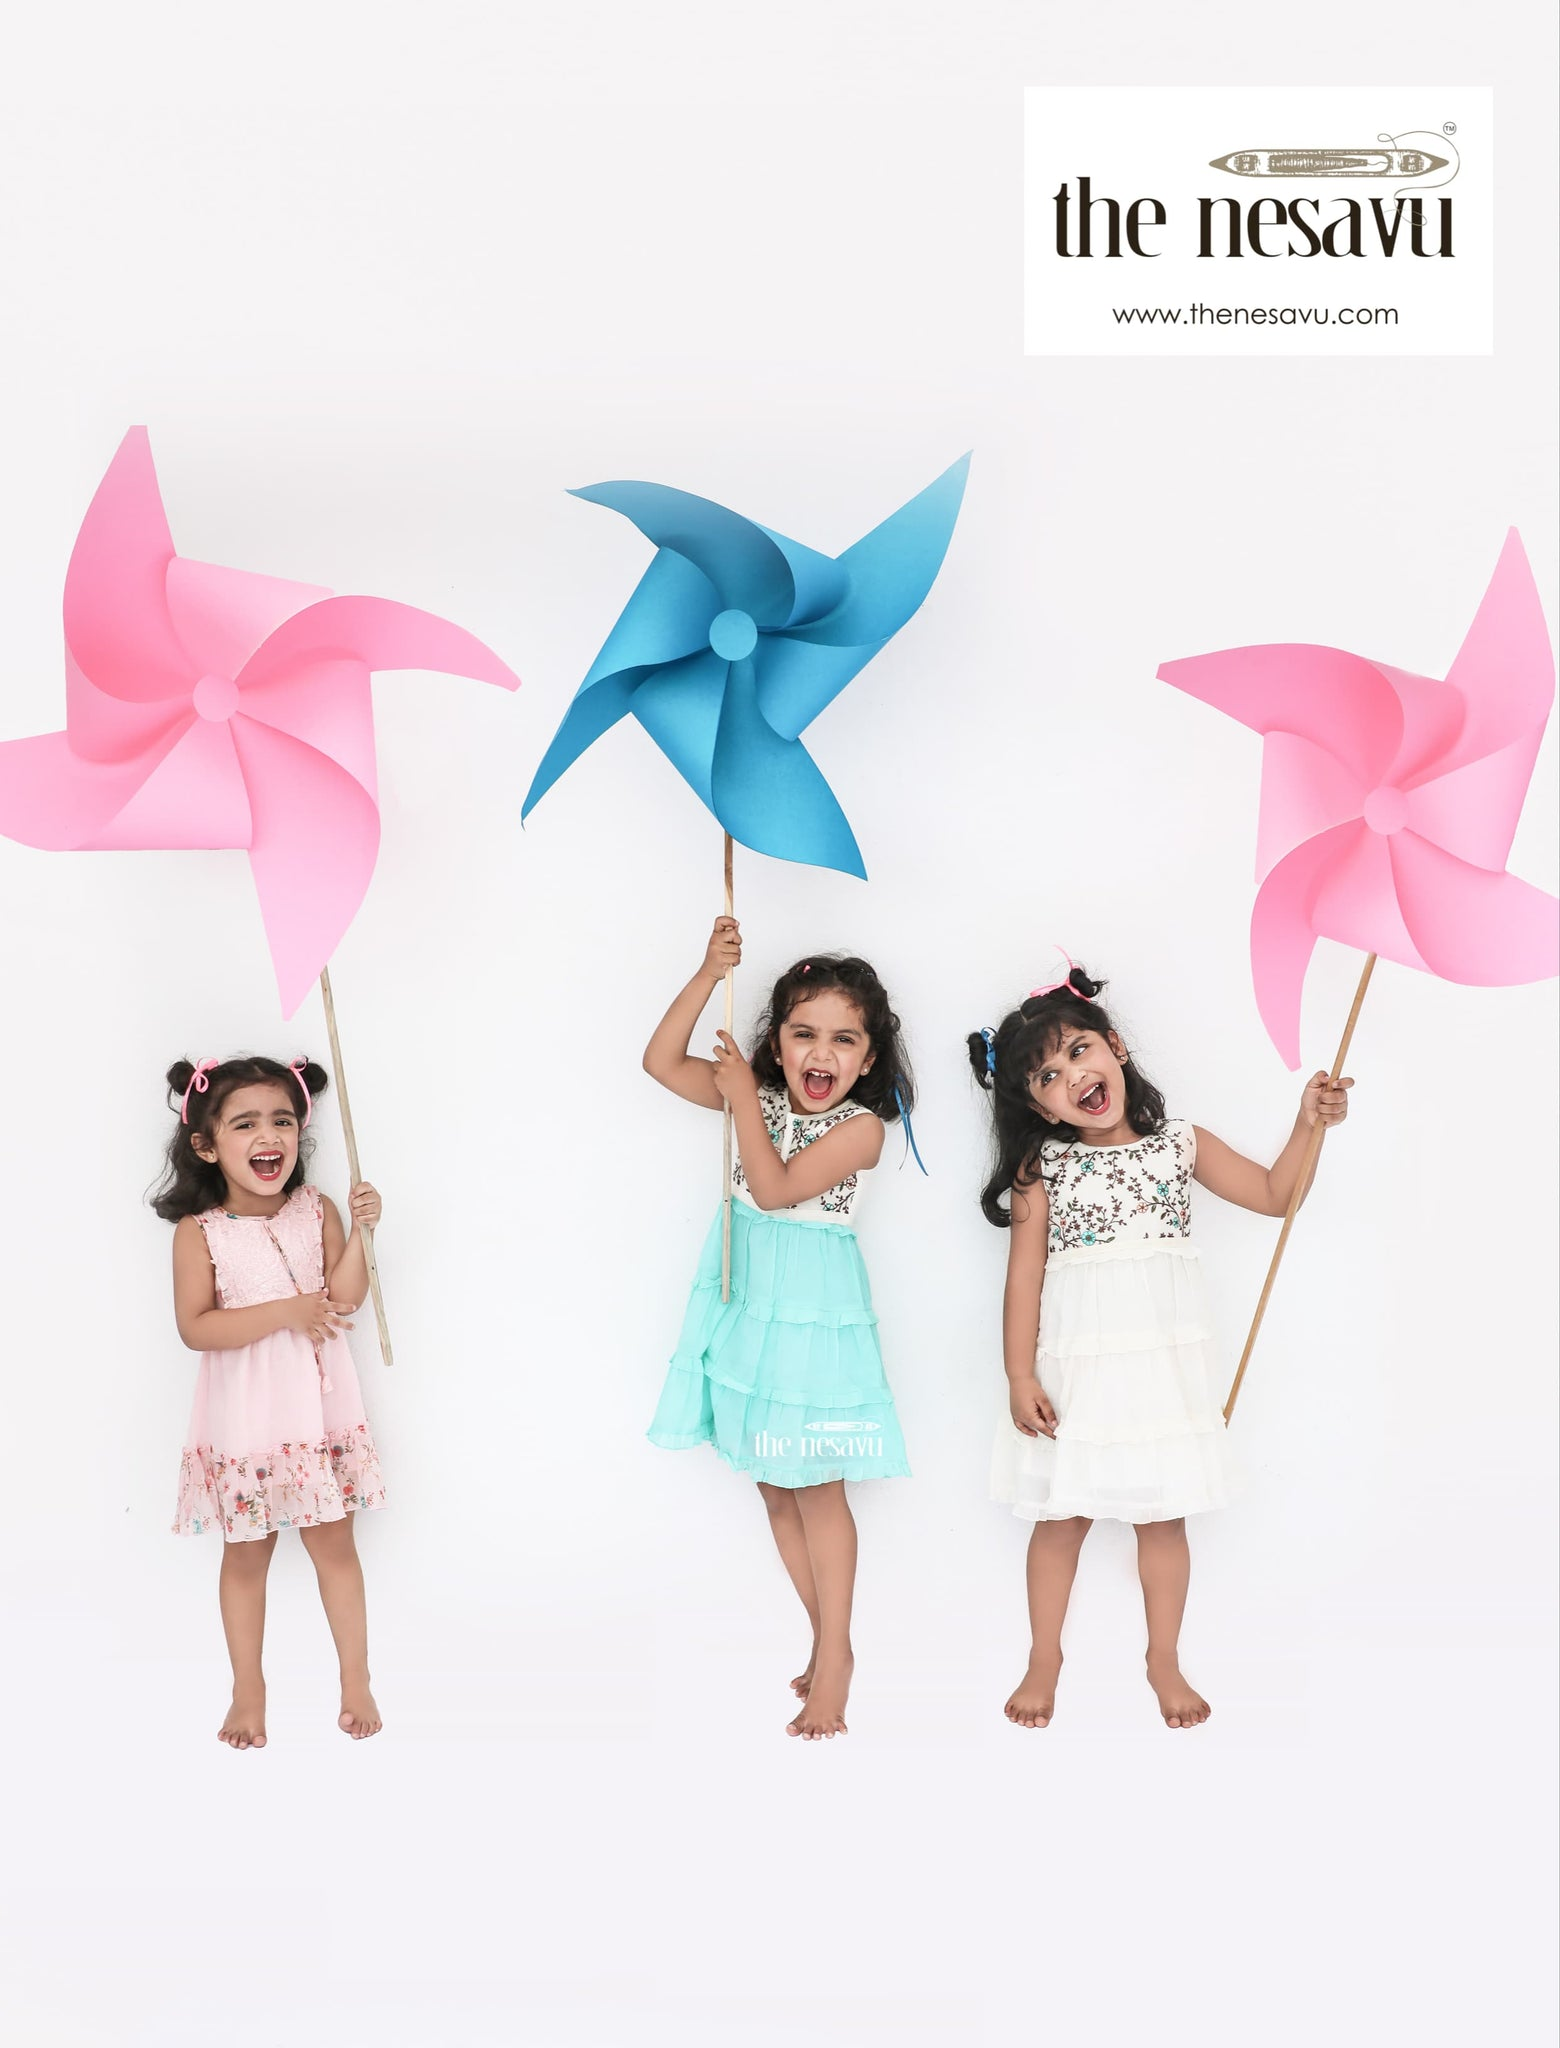 Nesavu-brand-zest summer play wear cotton frocks for kids girls made of sustainable eco friendly fabric